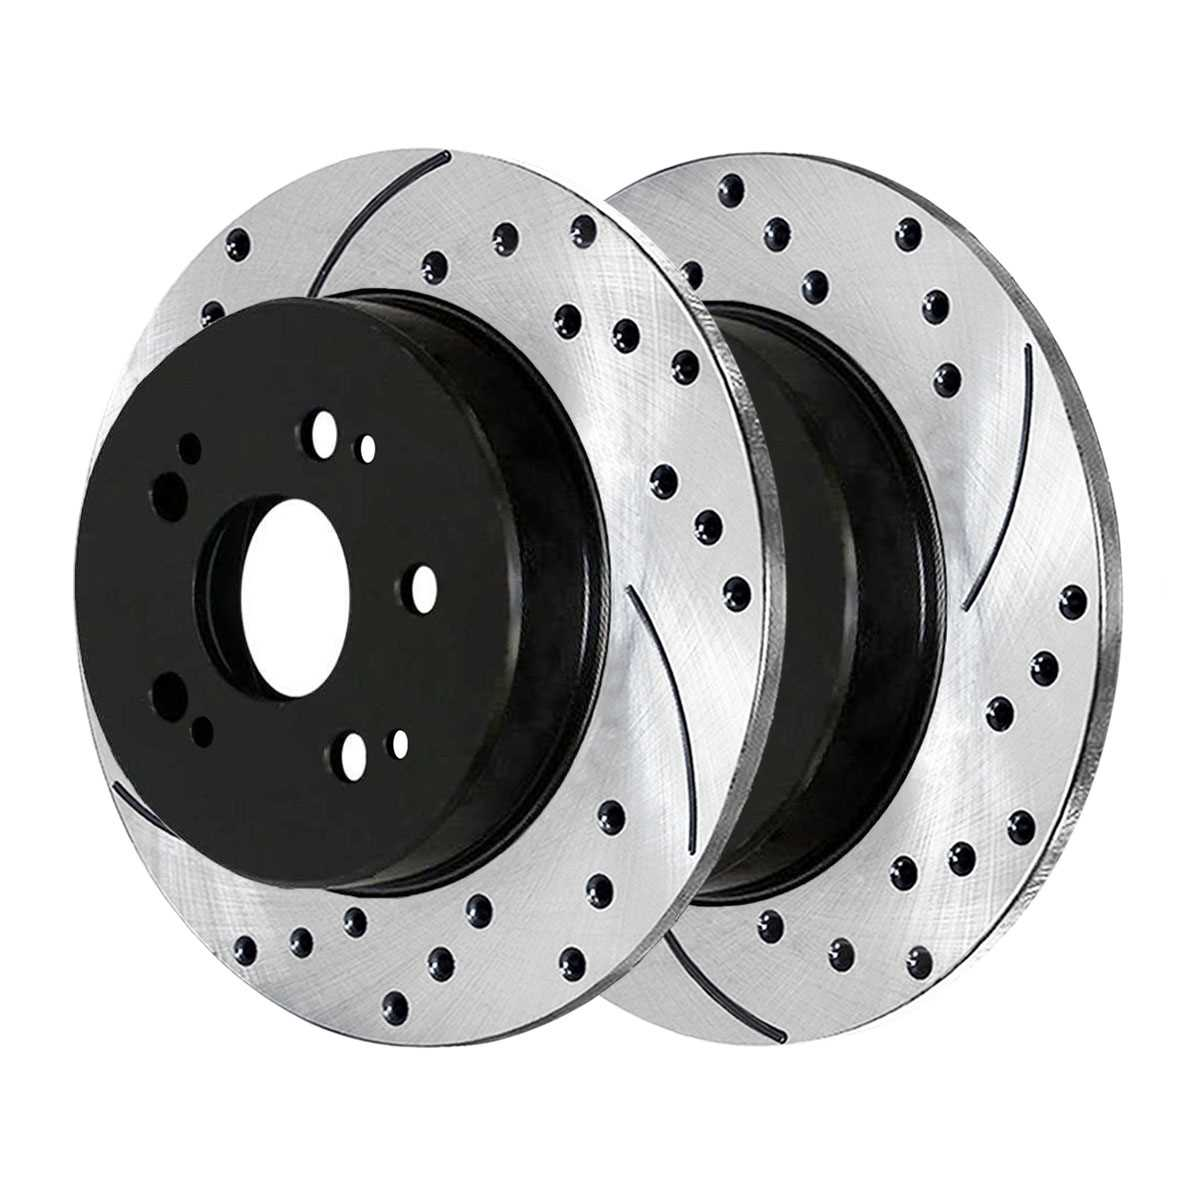 AutoShack PR44175LR Front Drilled and Slotted Brake Rotor Pair 2 Pieces Fits Driver and Passenger Side